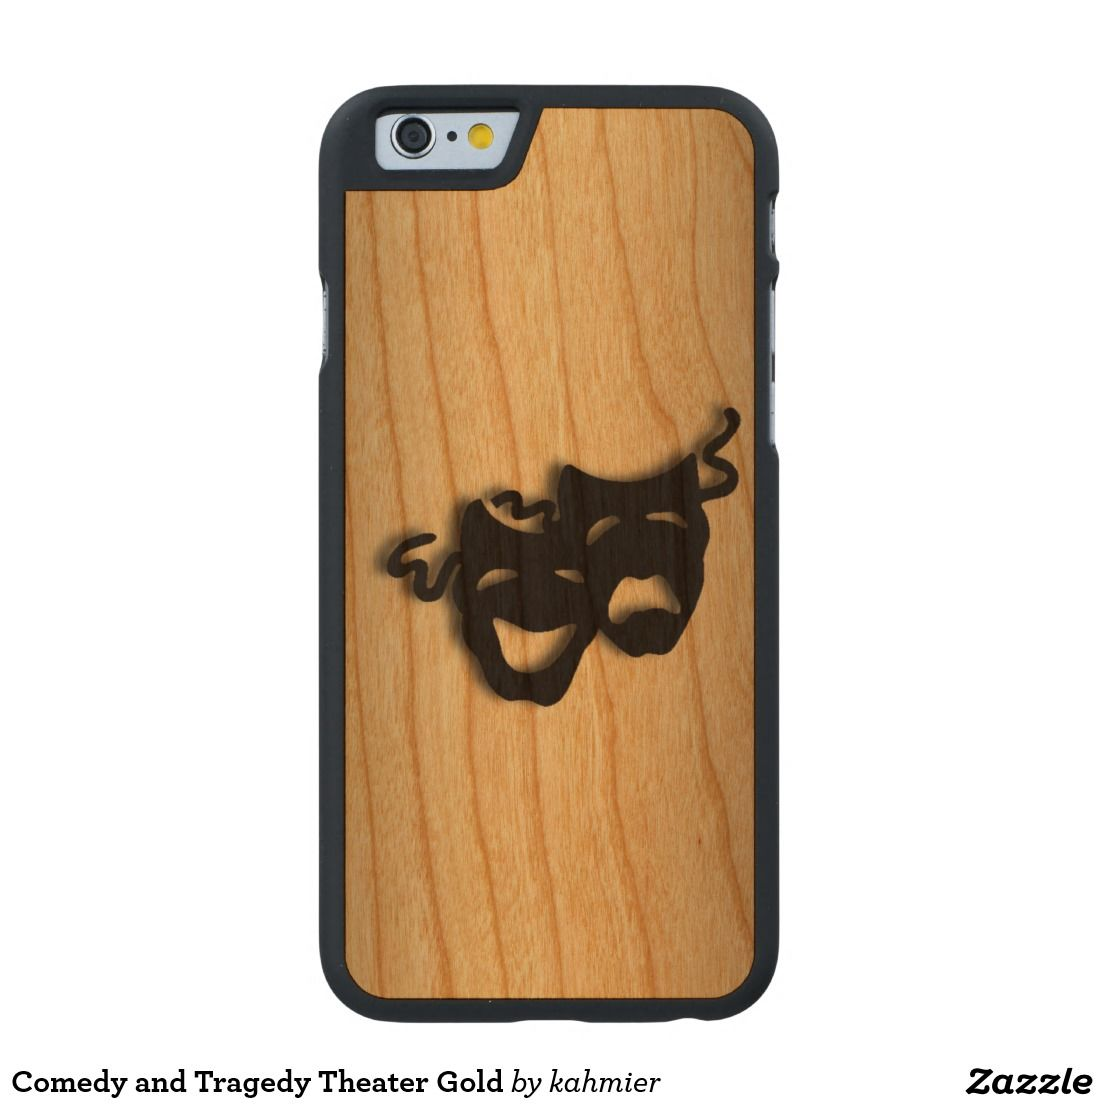 Comedy and Tragedy Theater Gold Carved® Cherry iPhone 6 Case